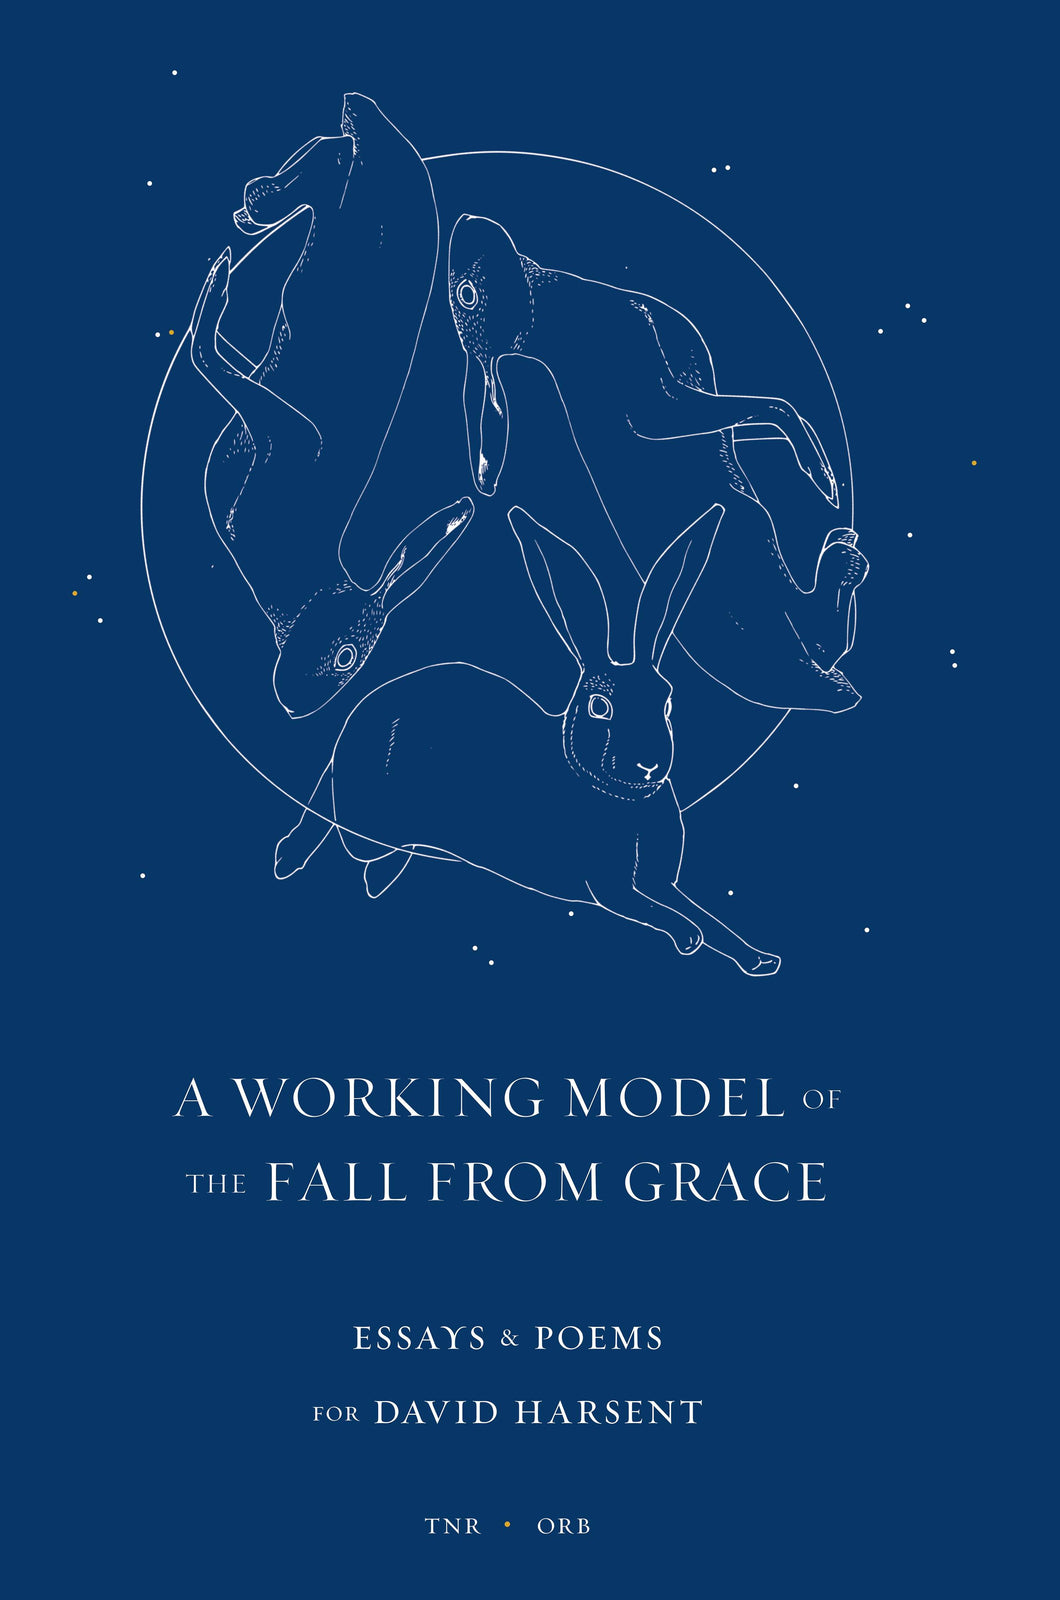 A Working Model of the Fall From Grace